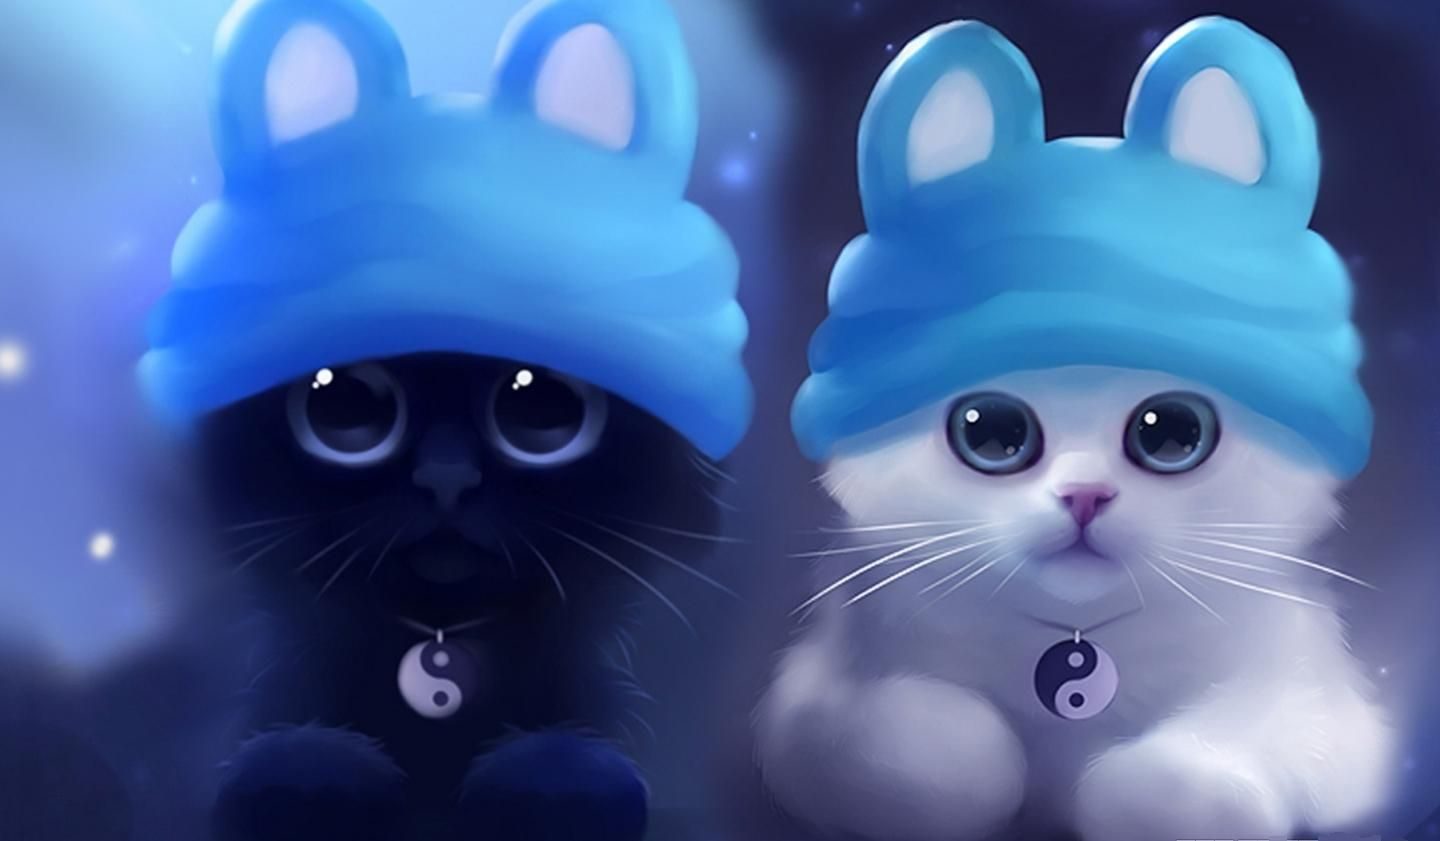 Cute Wallpapers 3d Cats The Cool Art Animal Wallpapers Cats